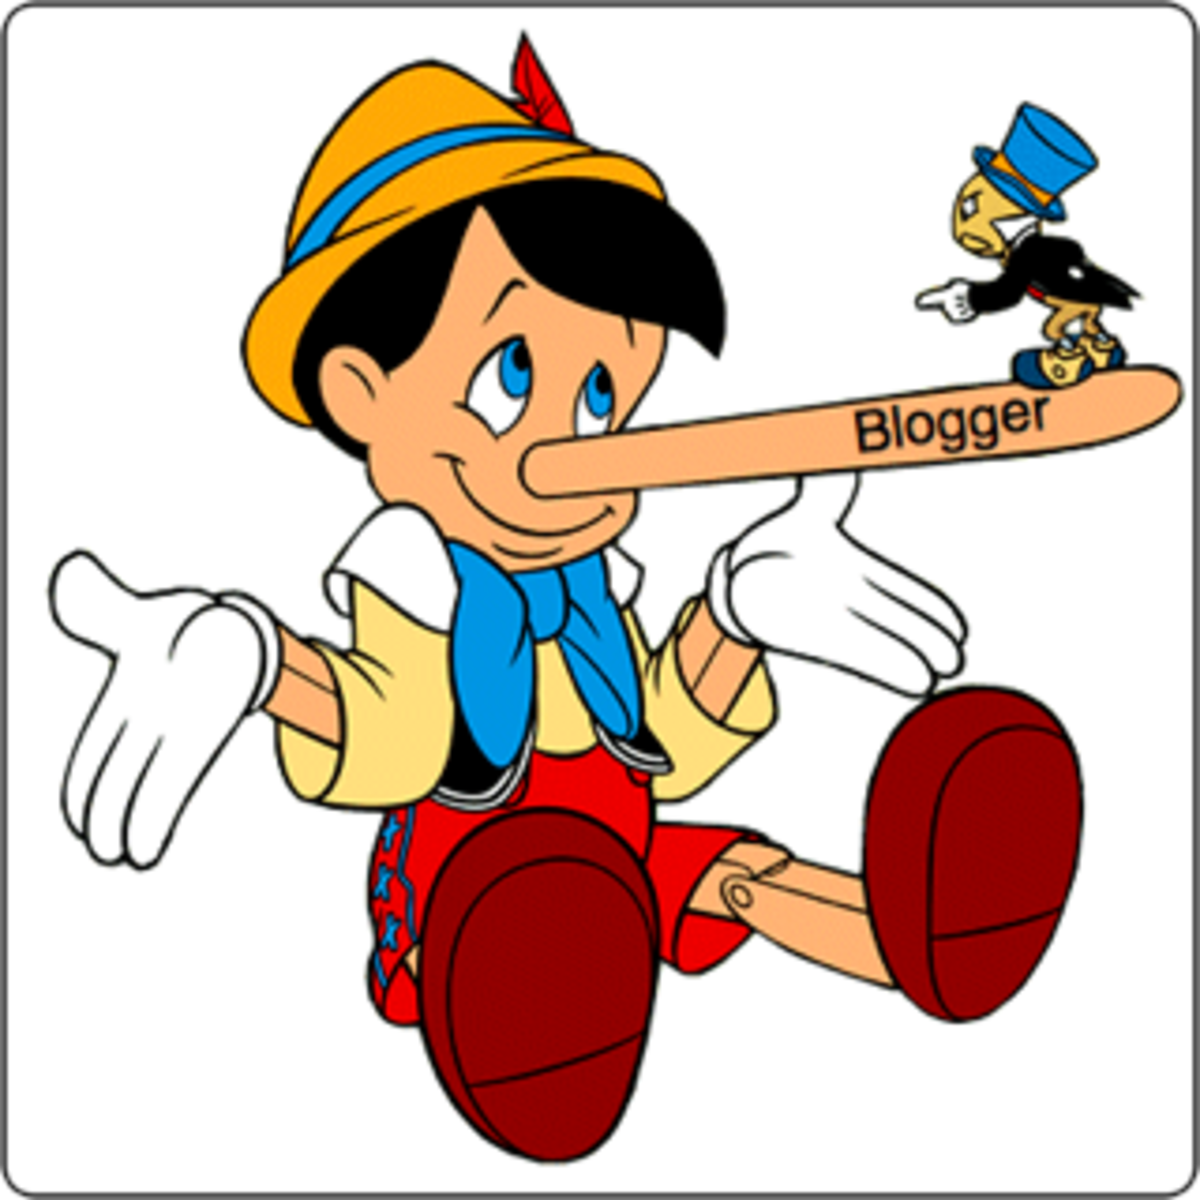 Credibility is important for blogging and general news reporting.